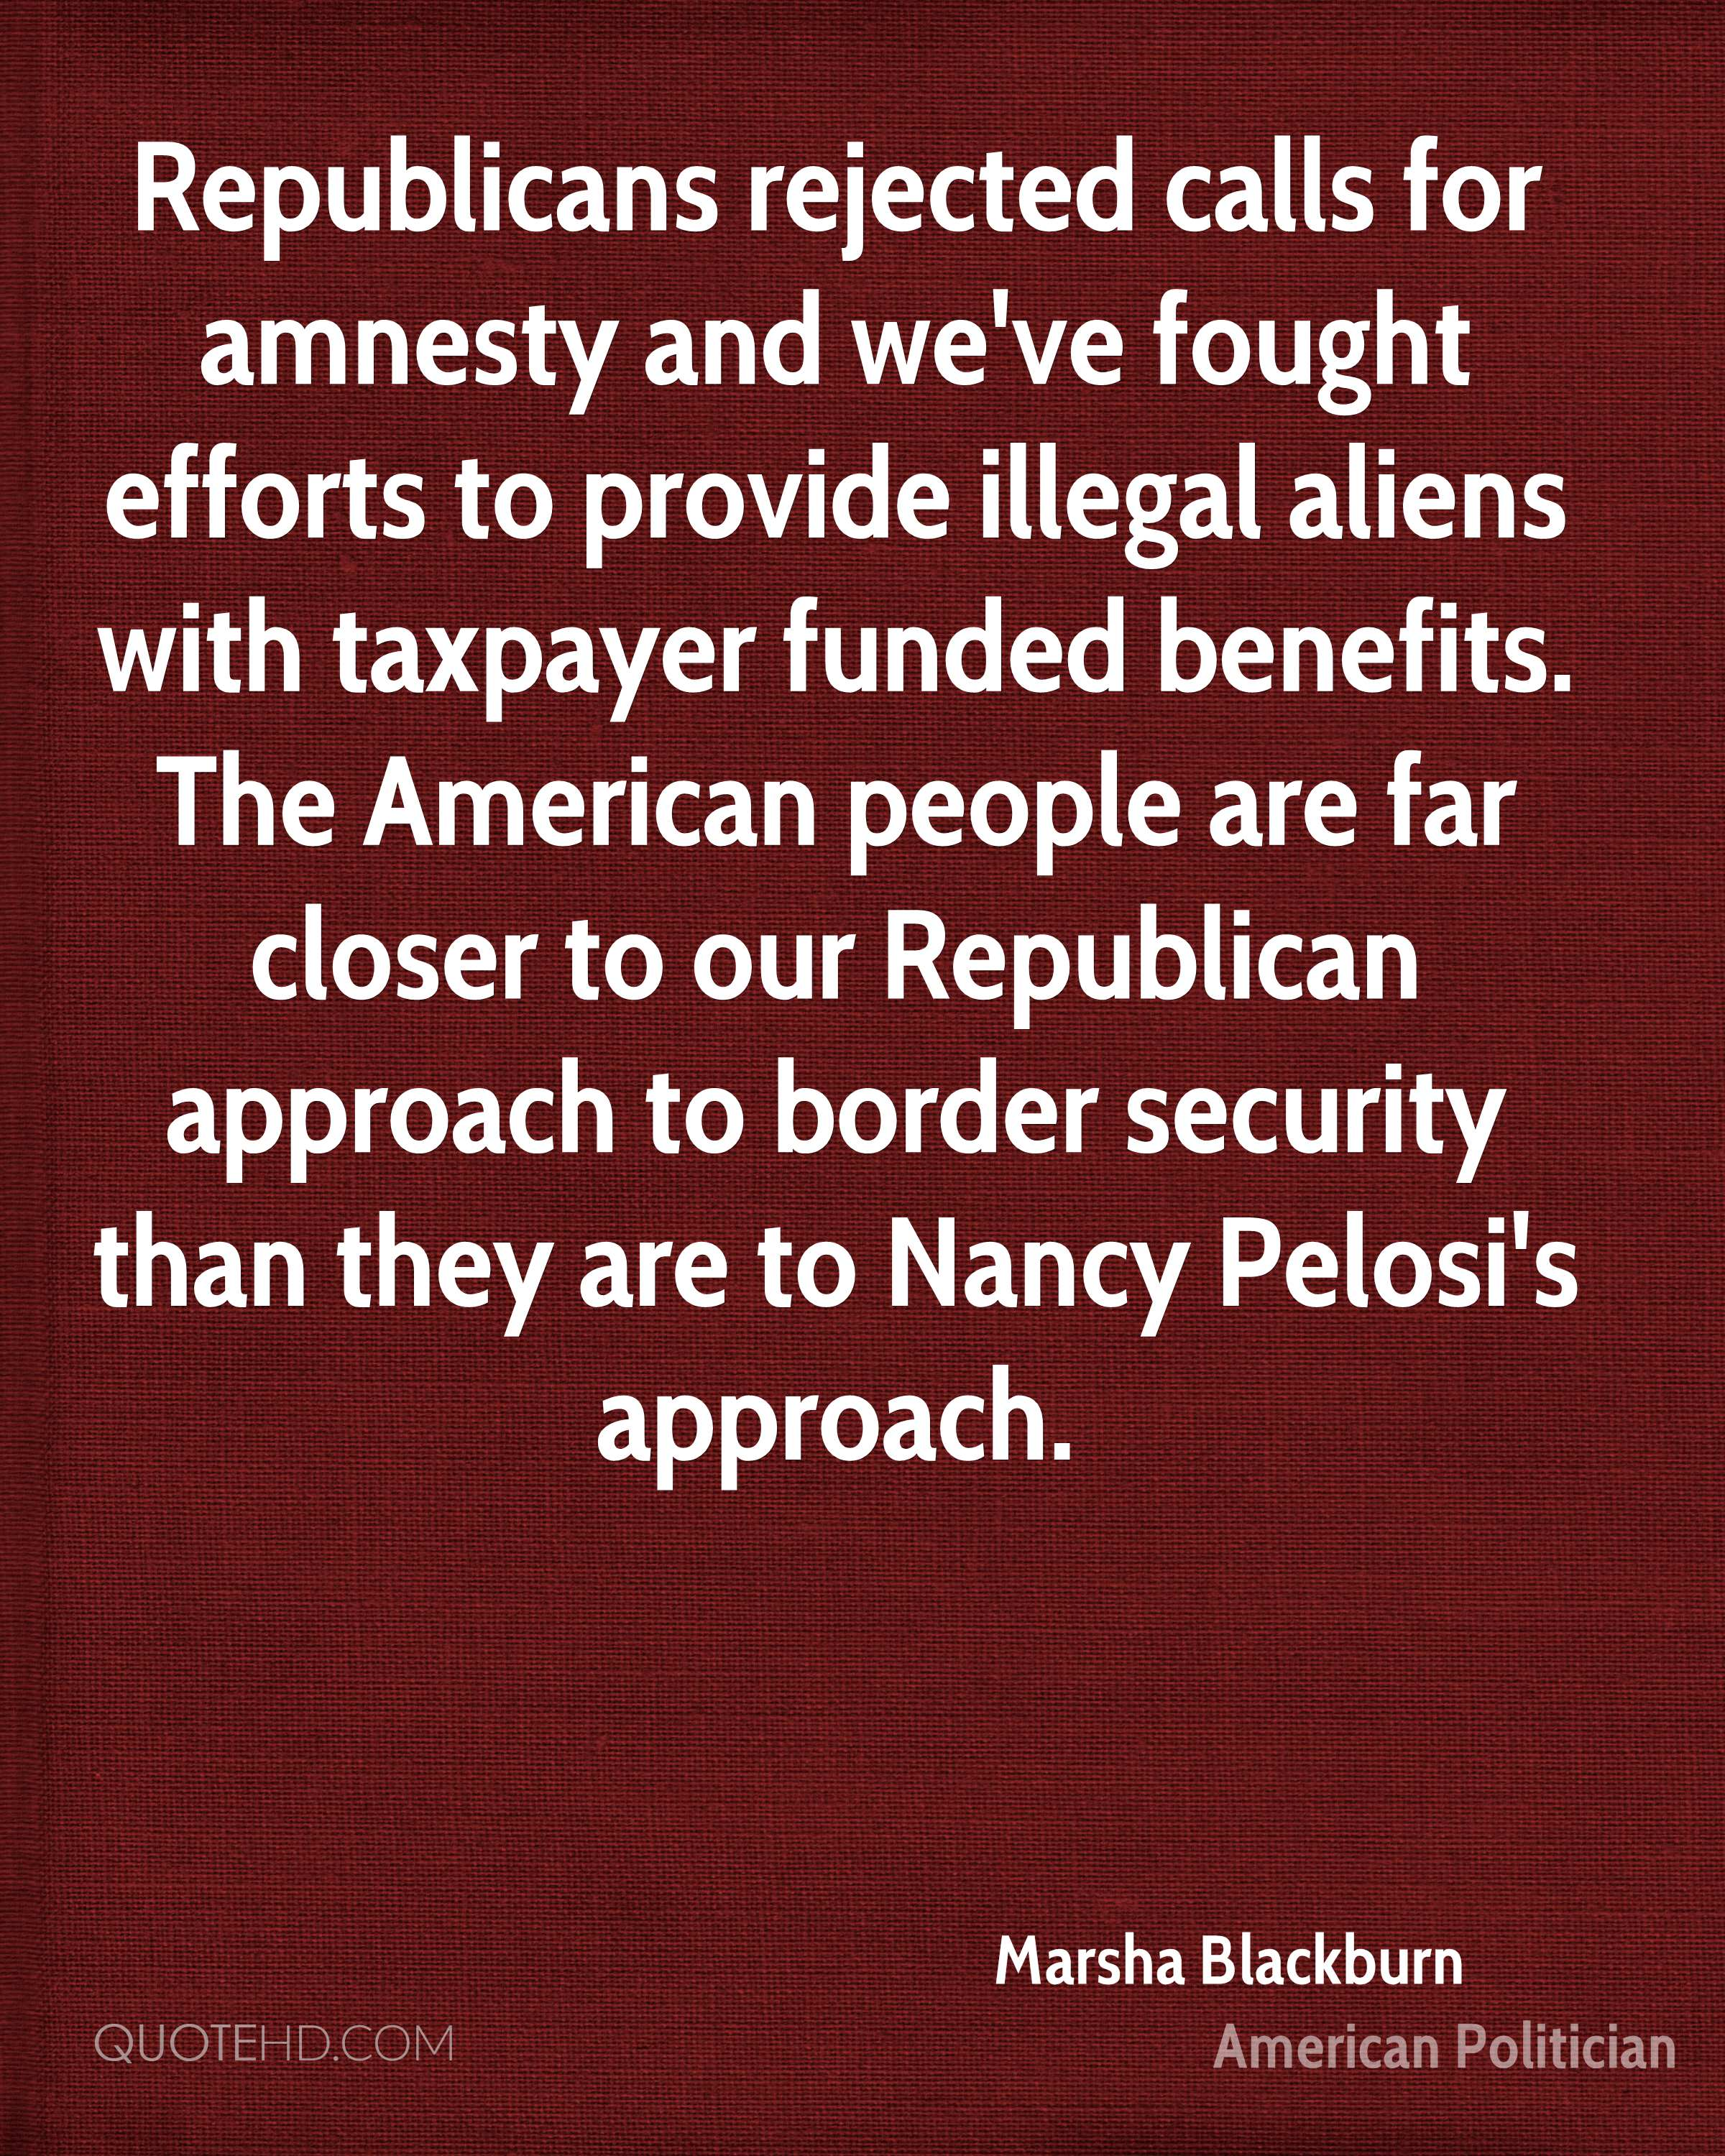 Republicans rejected calls for amnesty and we've fought efforts to provide illegal aliens with taxpayer funded benefits. The American people are far closer to our Republican approach to border security than they are to Nancy Pelosi's approach.